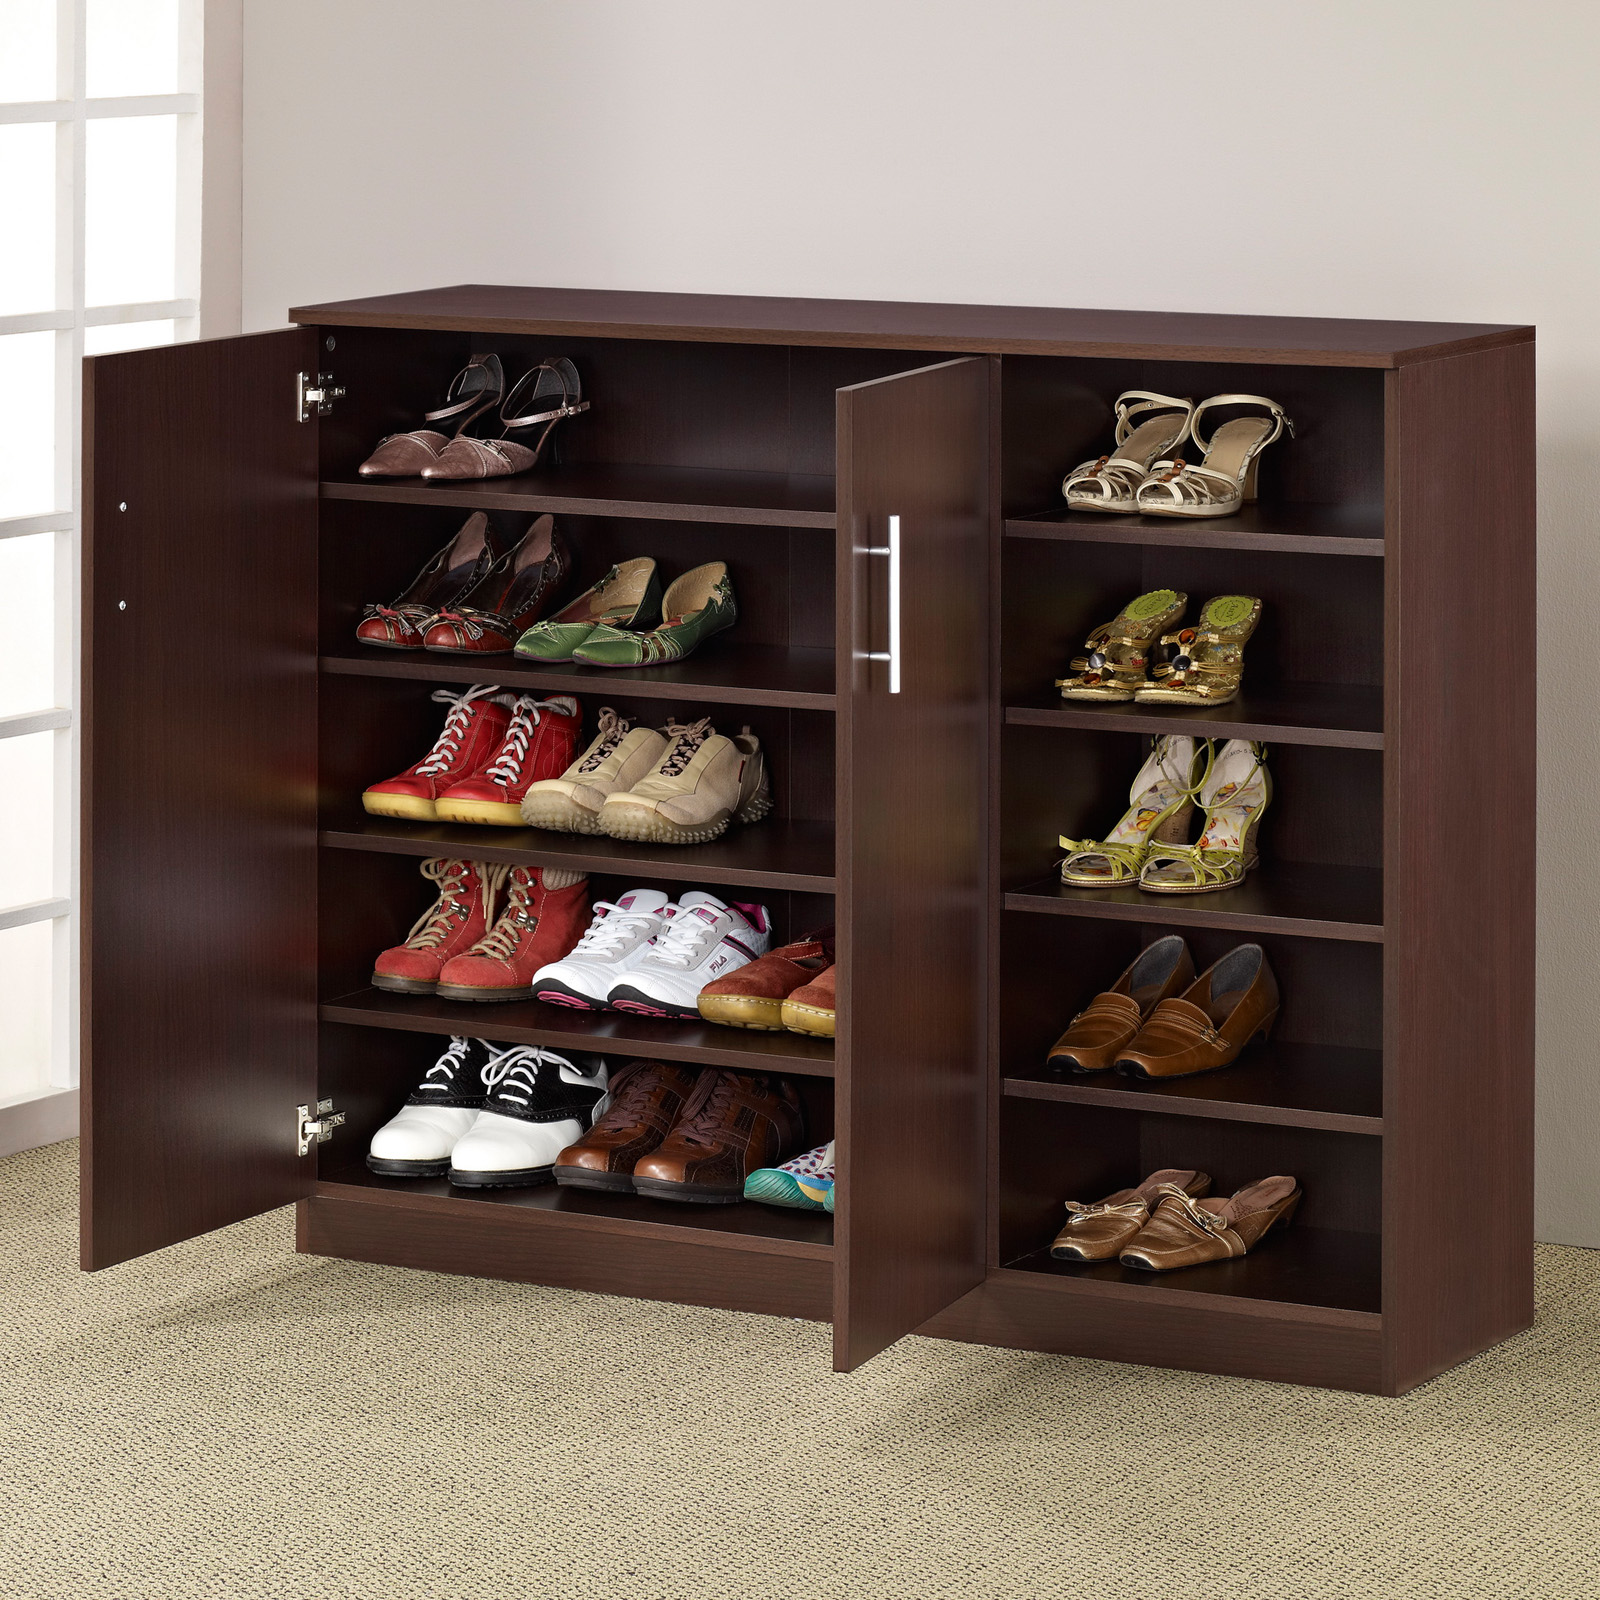 Furniture of America Grande Multi-Purpose & Shoe Cabinet - Walnut |  Hayneedle